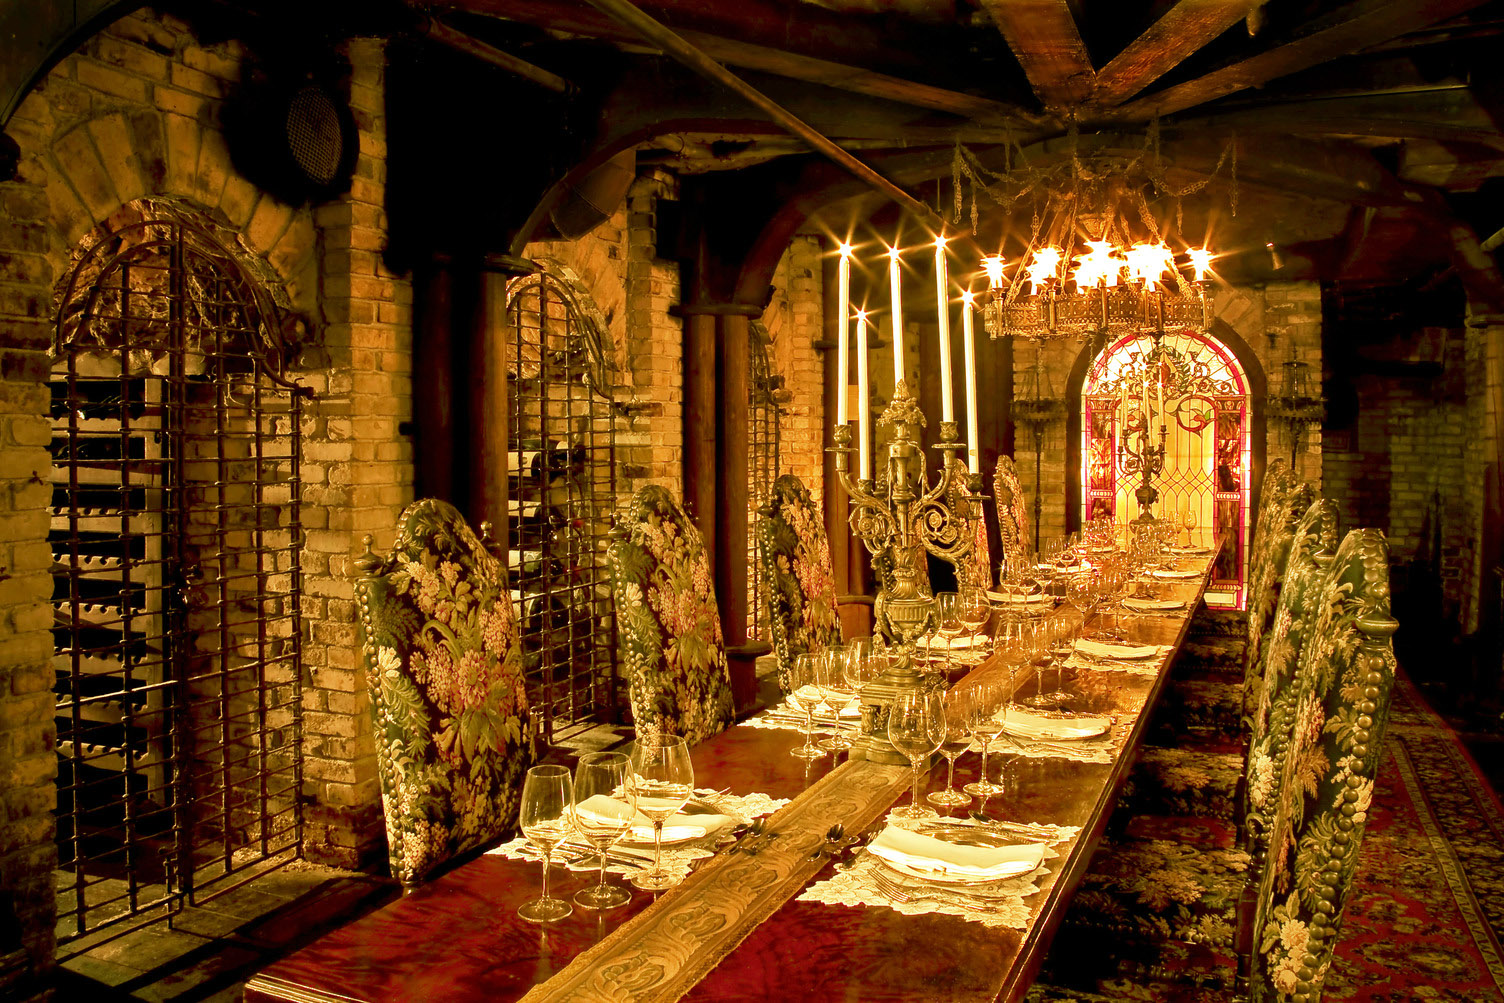 A Gothic-inspired wine cellar with a long table in the middle, with a lit candelabra